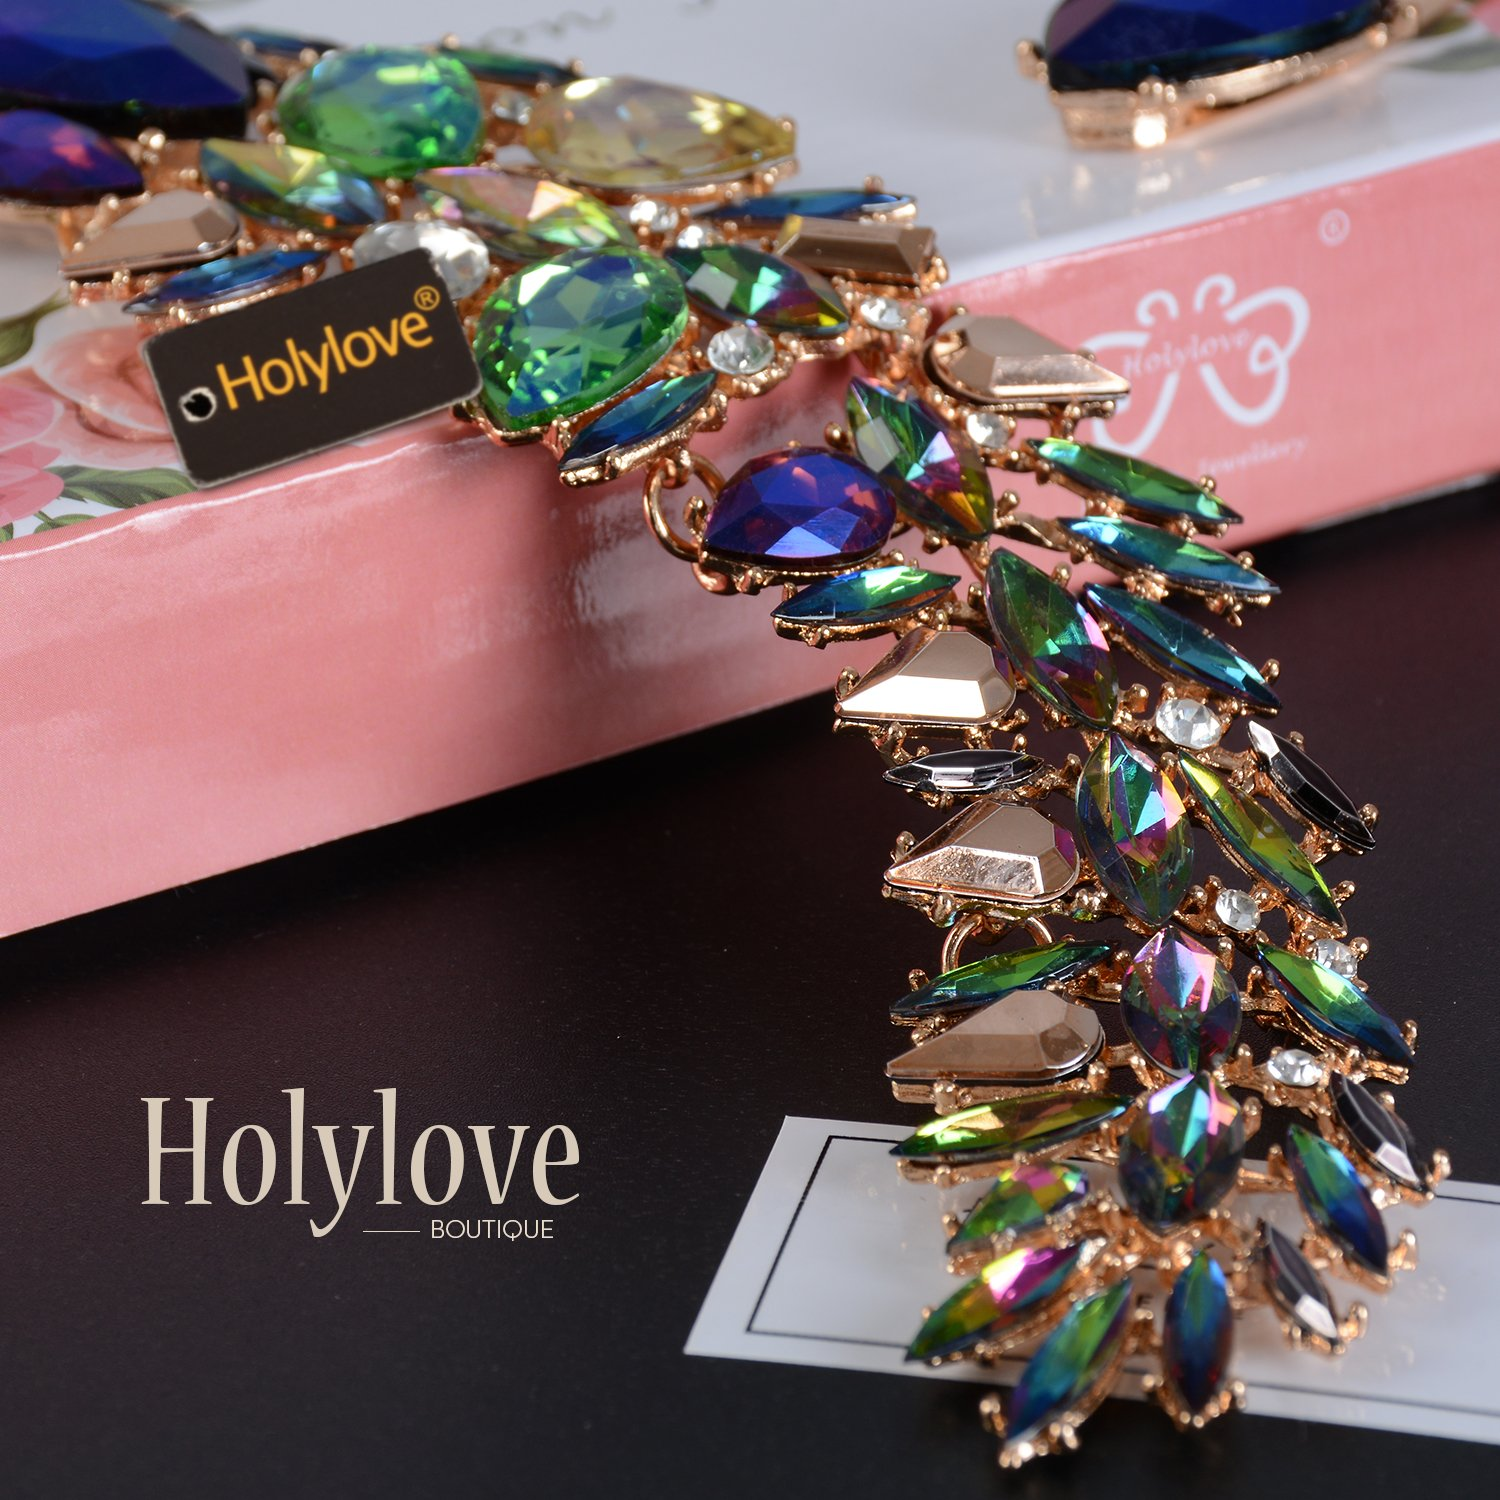 Holylove Women Costume Necklace Colorful, Statement Necklace for Women Novelty Fashion Jewelry 1 pc with Gift Box- HLN0008 Colorful by Holylove (Image #5)